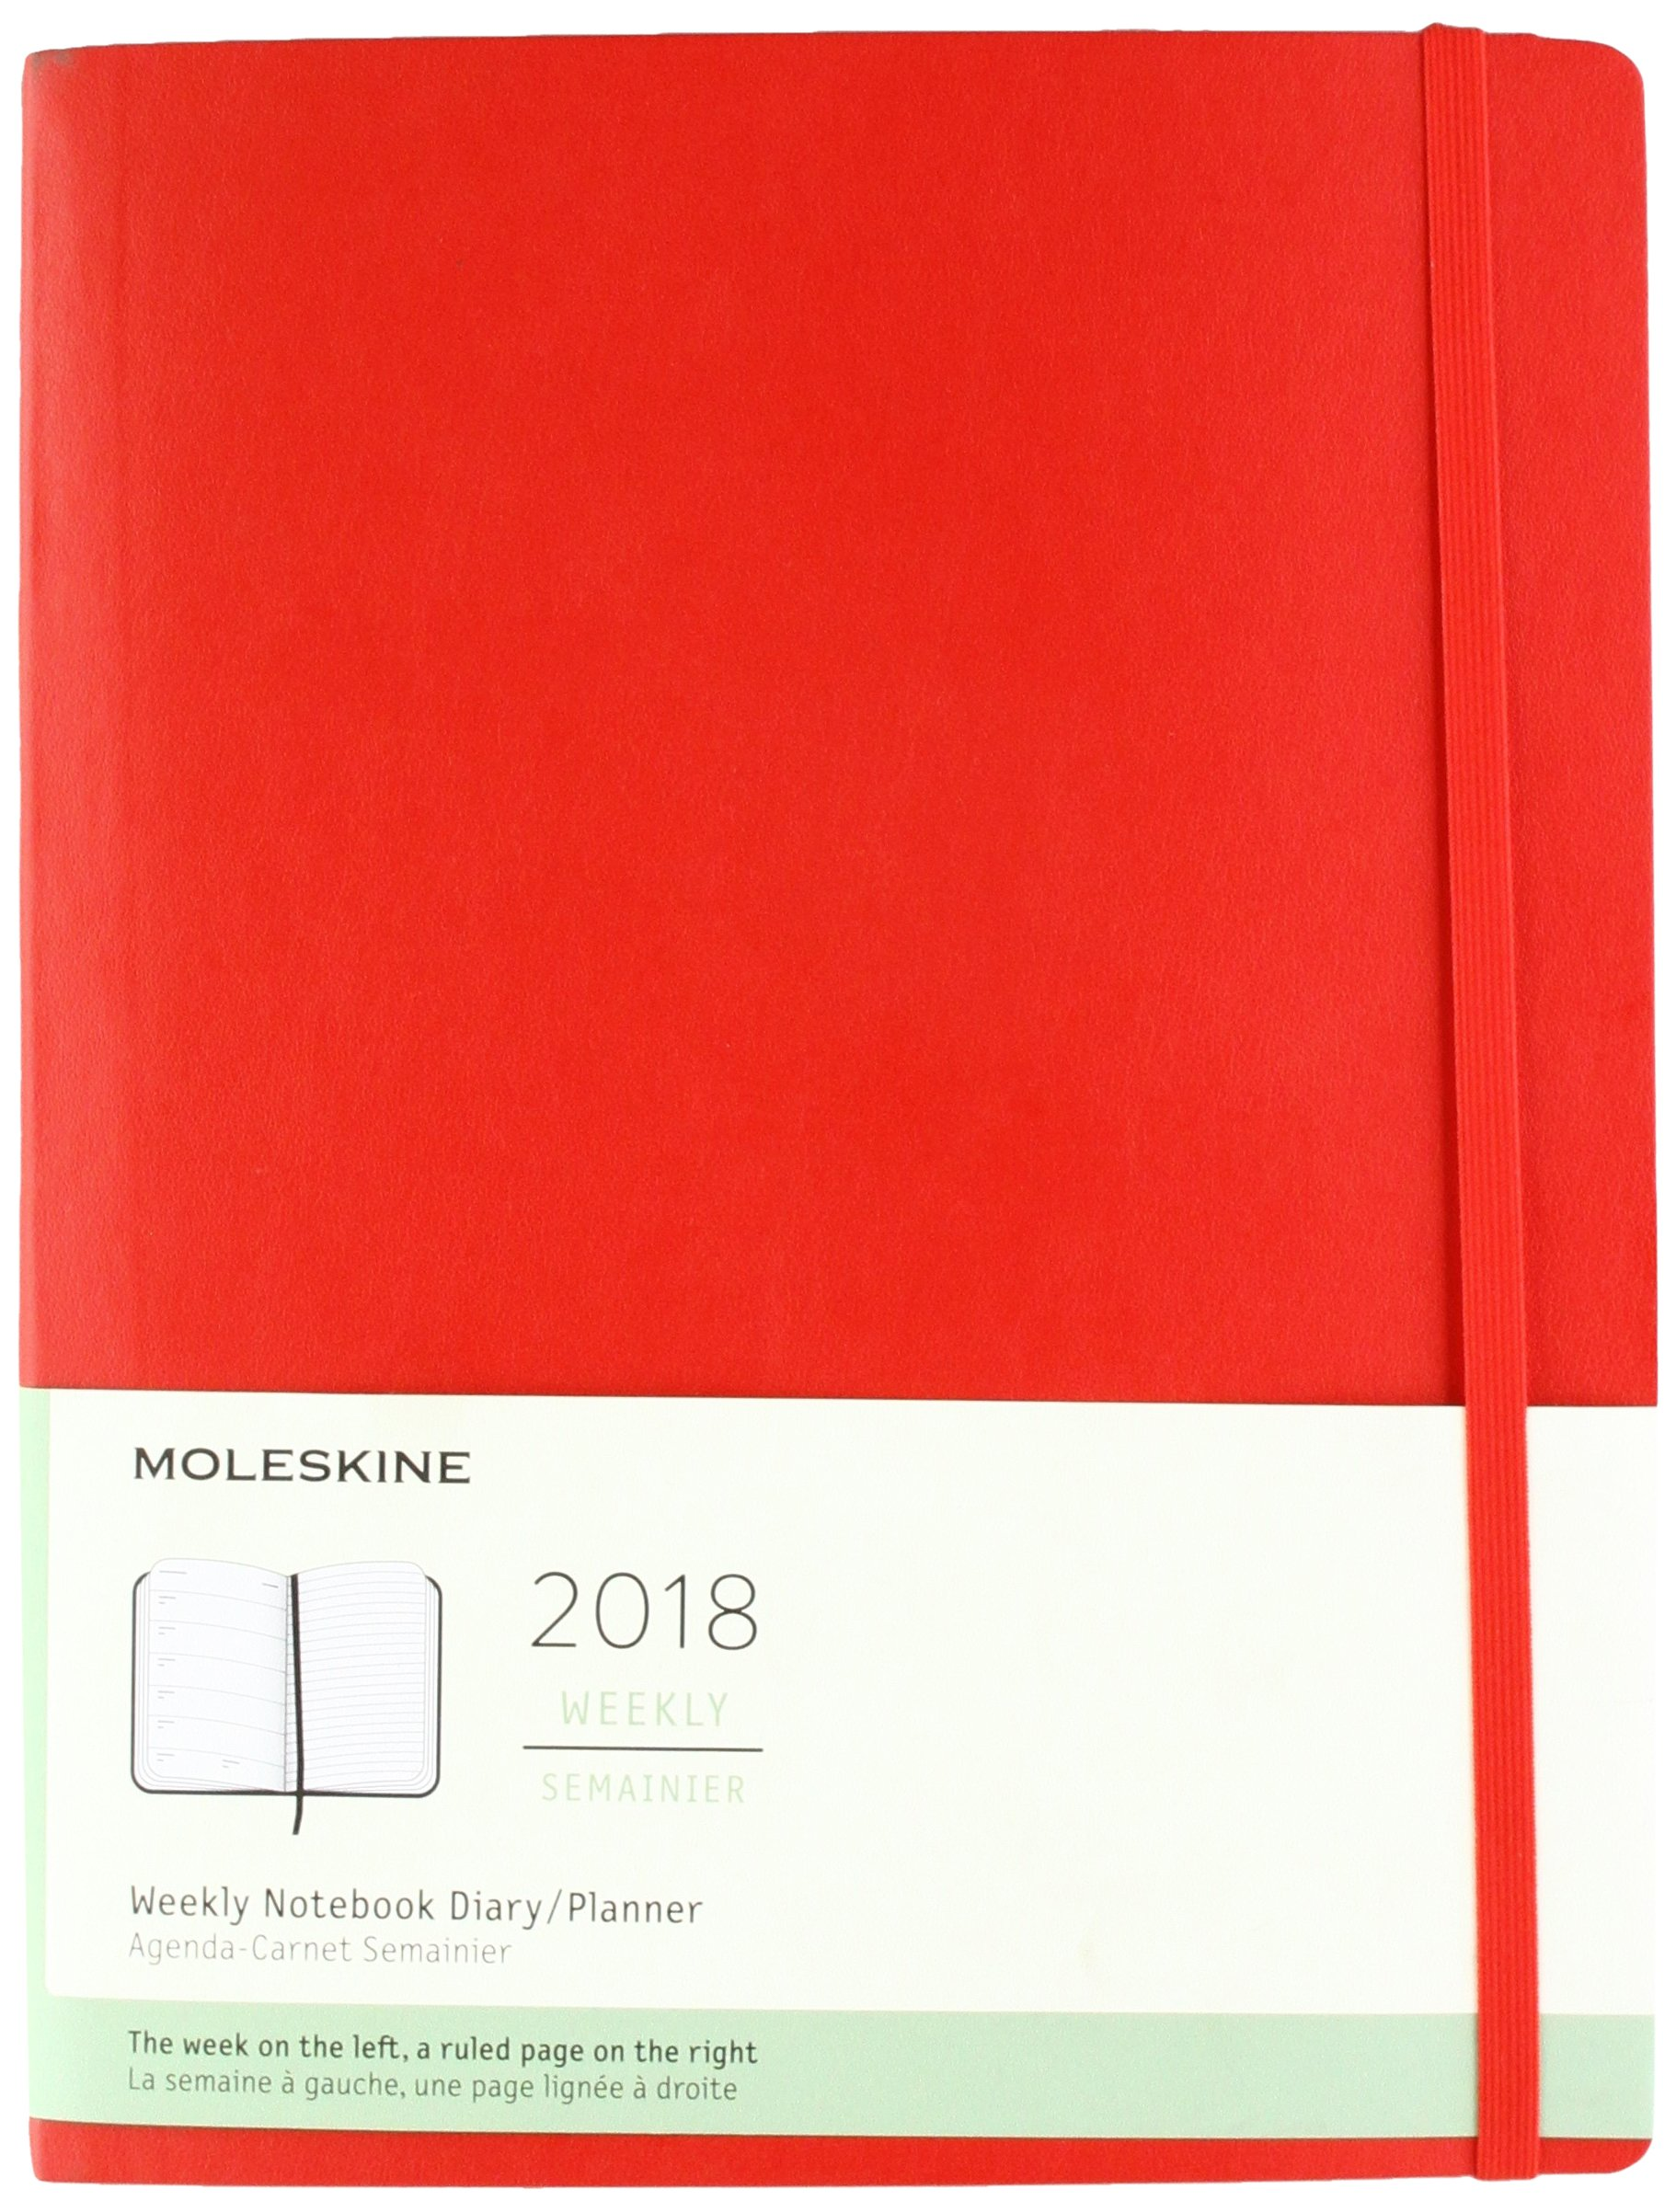 Moleskine 2018 Weekly Notebook Diary / Planner, Extra Large ...